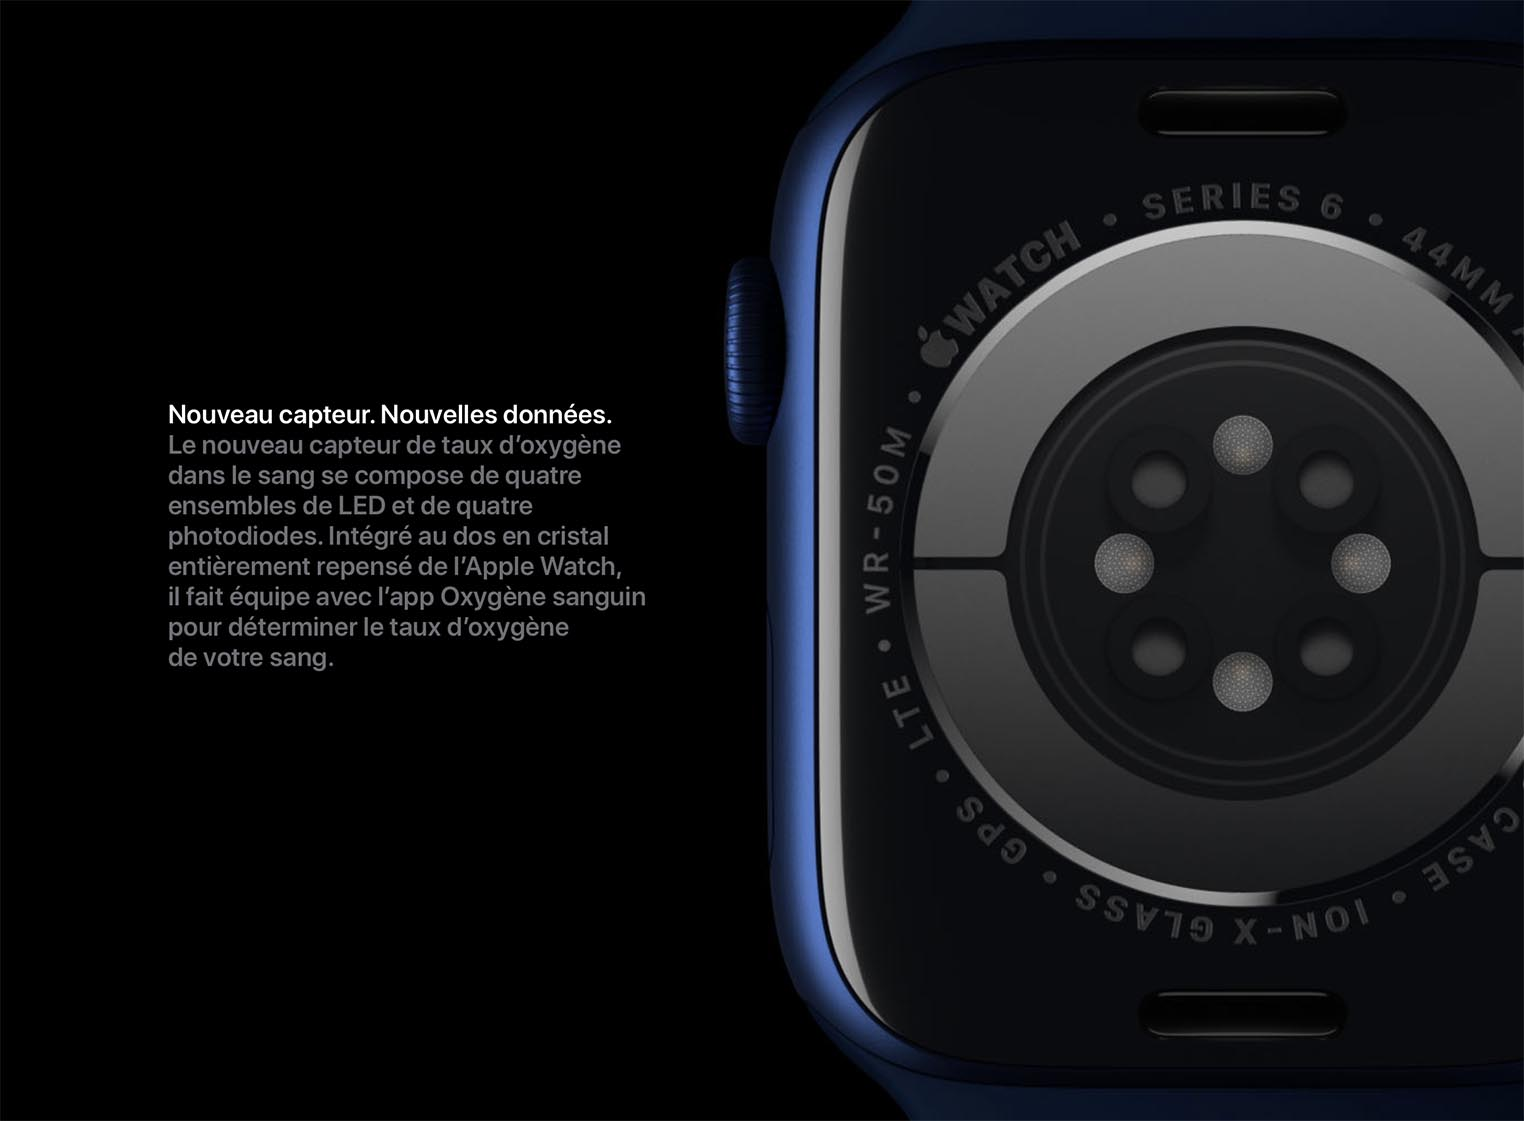 Apple Watch Series 6 taux oxygène sang